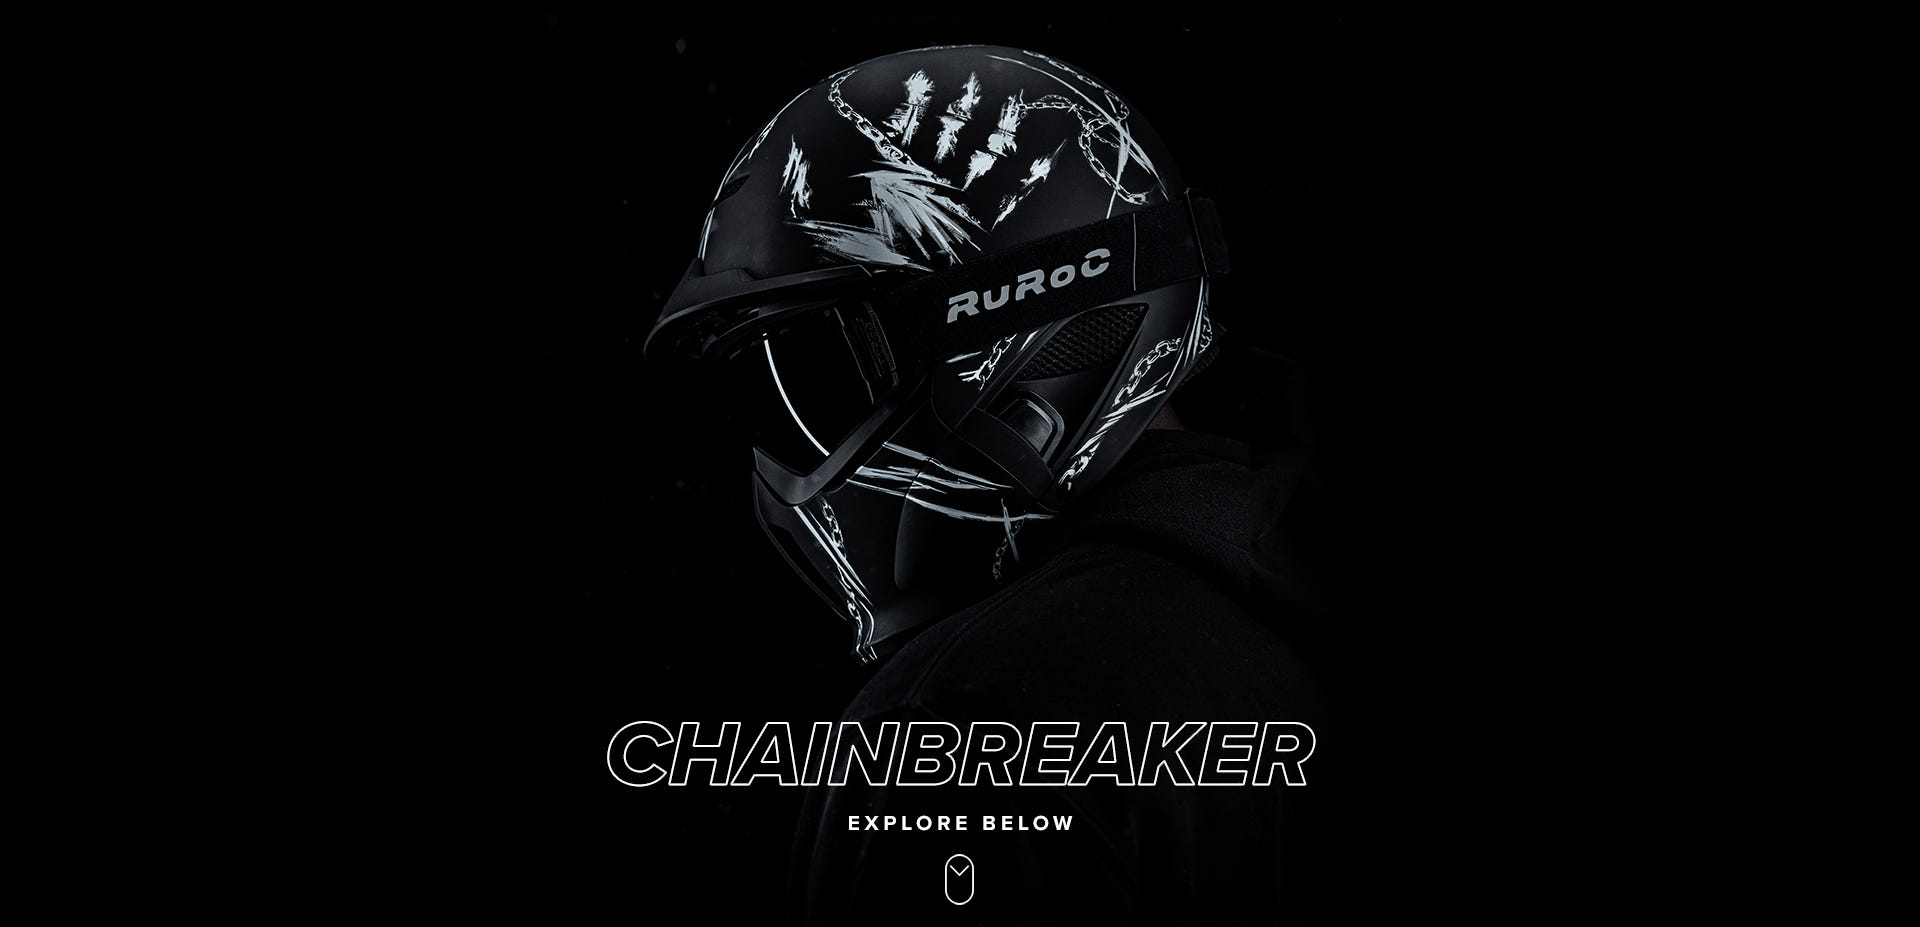 rg1-dx---chainbreaker---top-banner_1.jpg